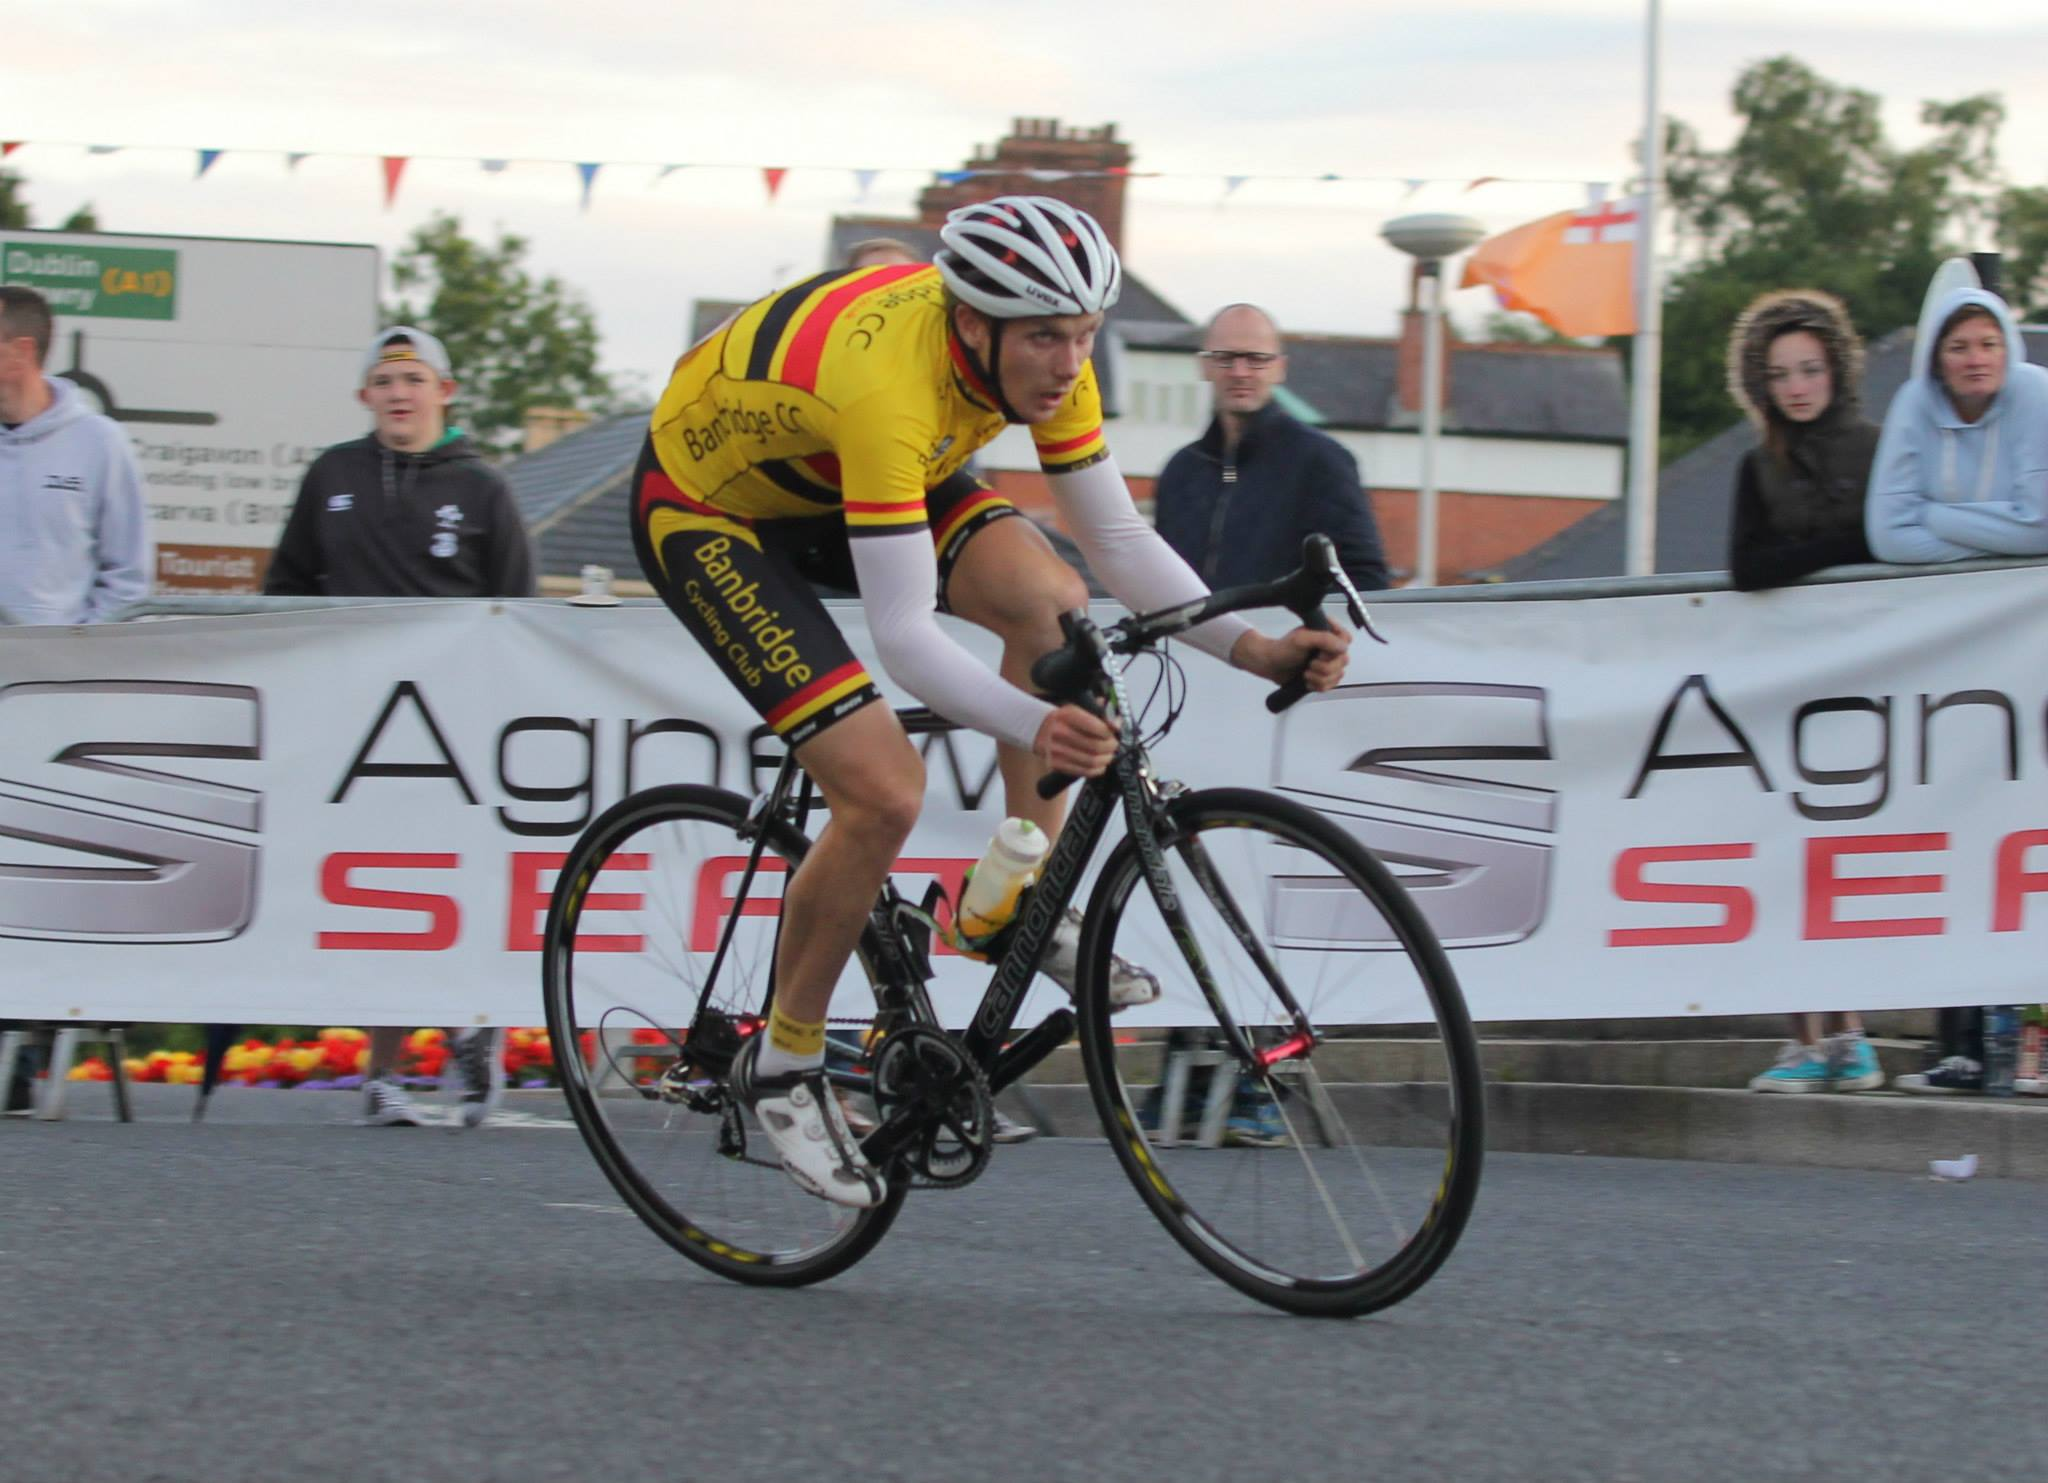 Gareth McKee (Banbridge CC) was determined to put on a show in his home town.